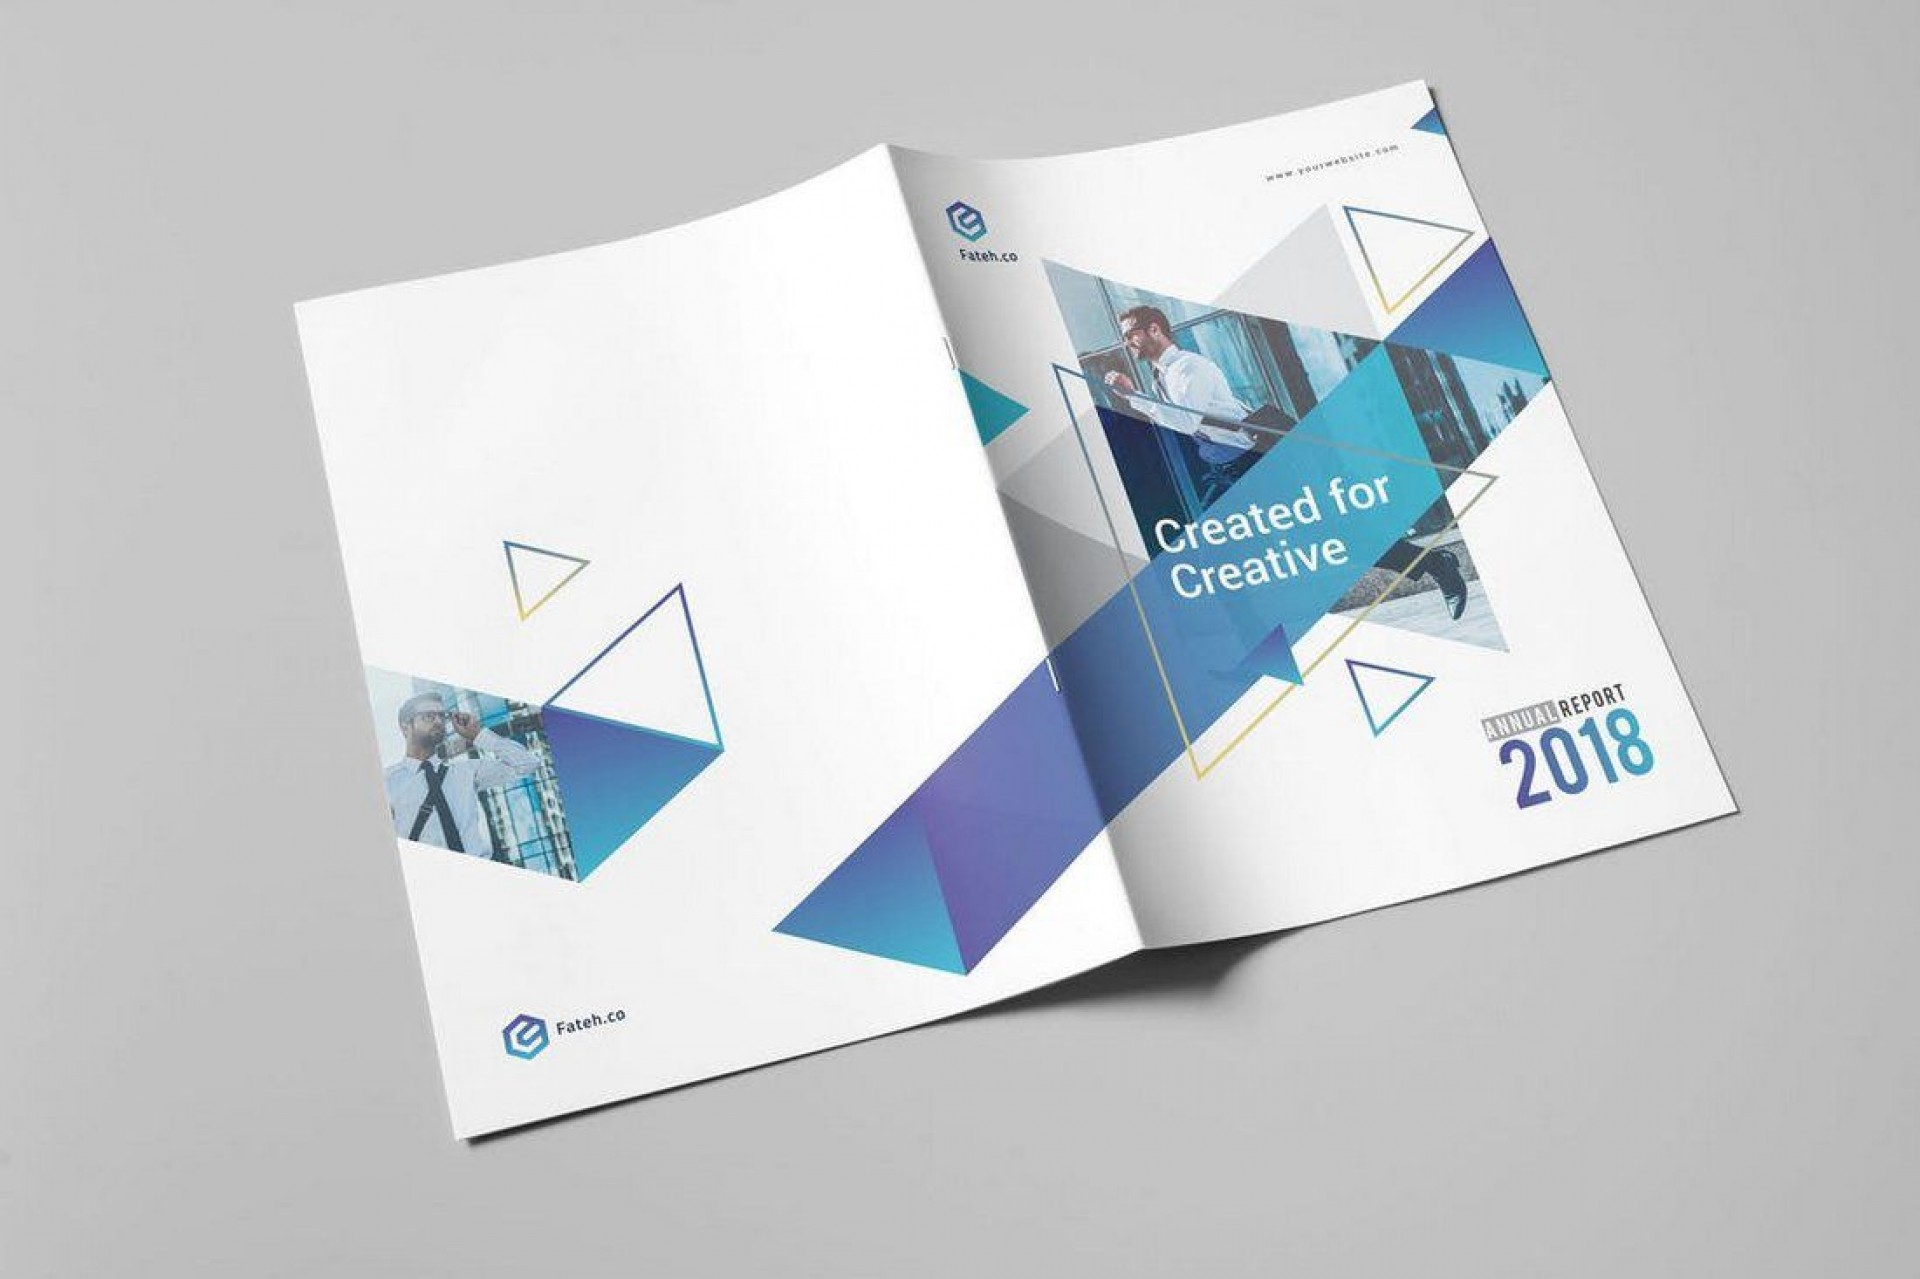 008 Wonderful Free Adobe Indesign Annual Report Template High Resolution 1920